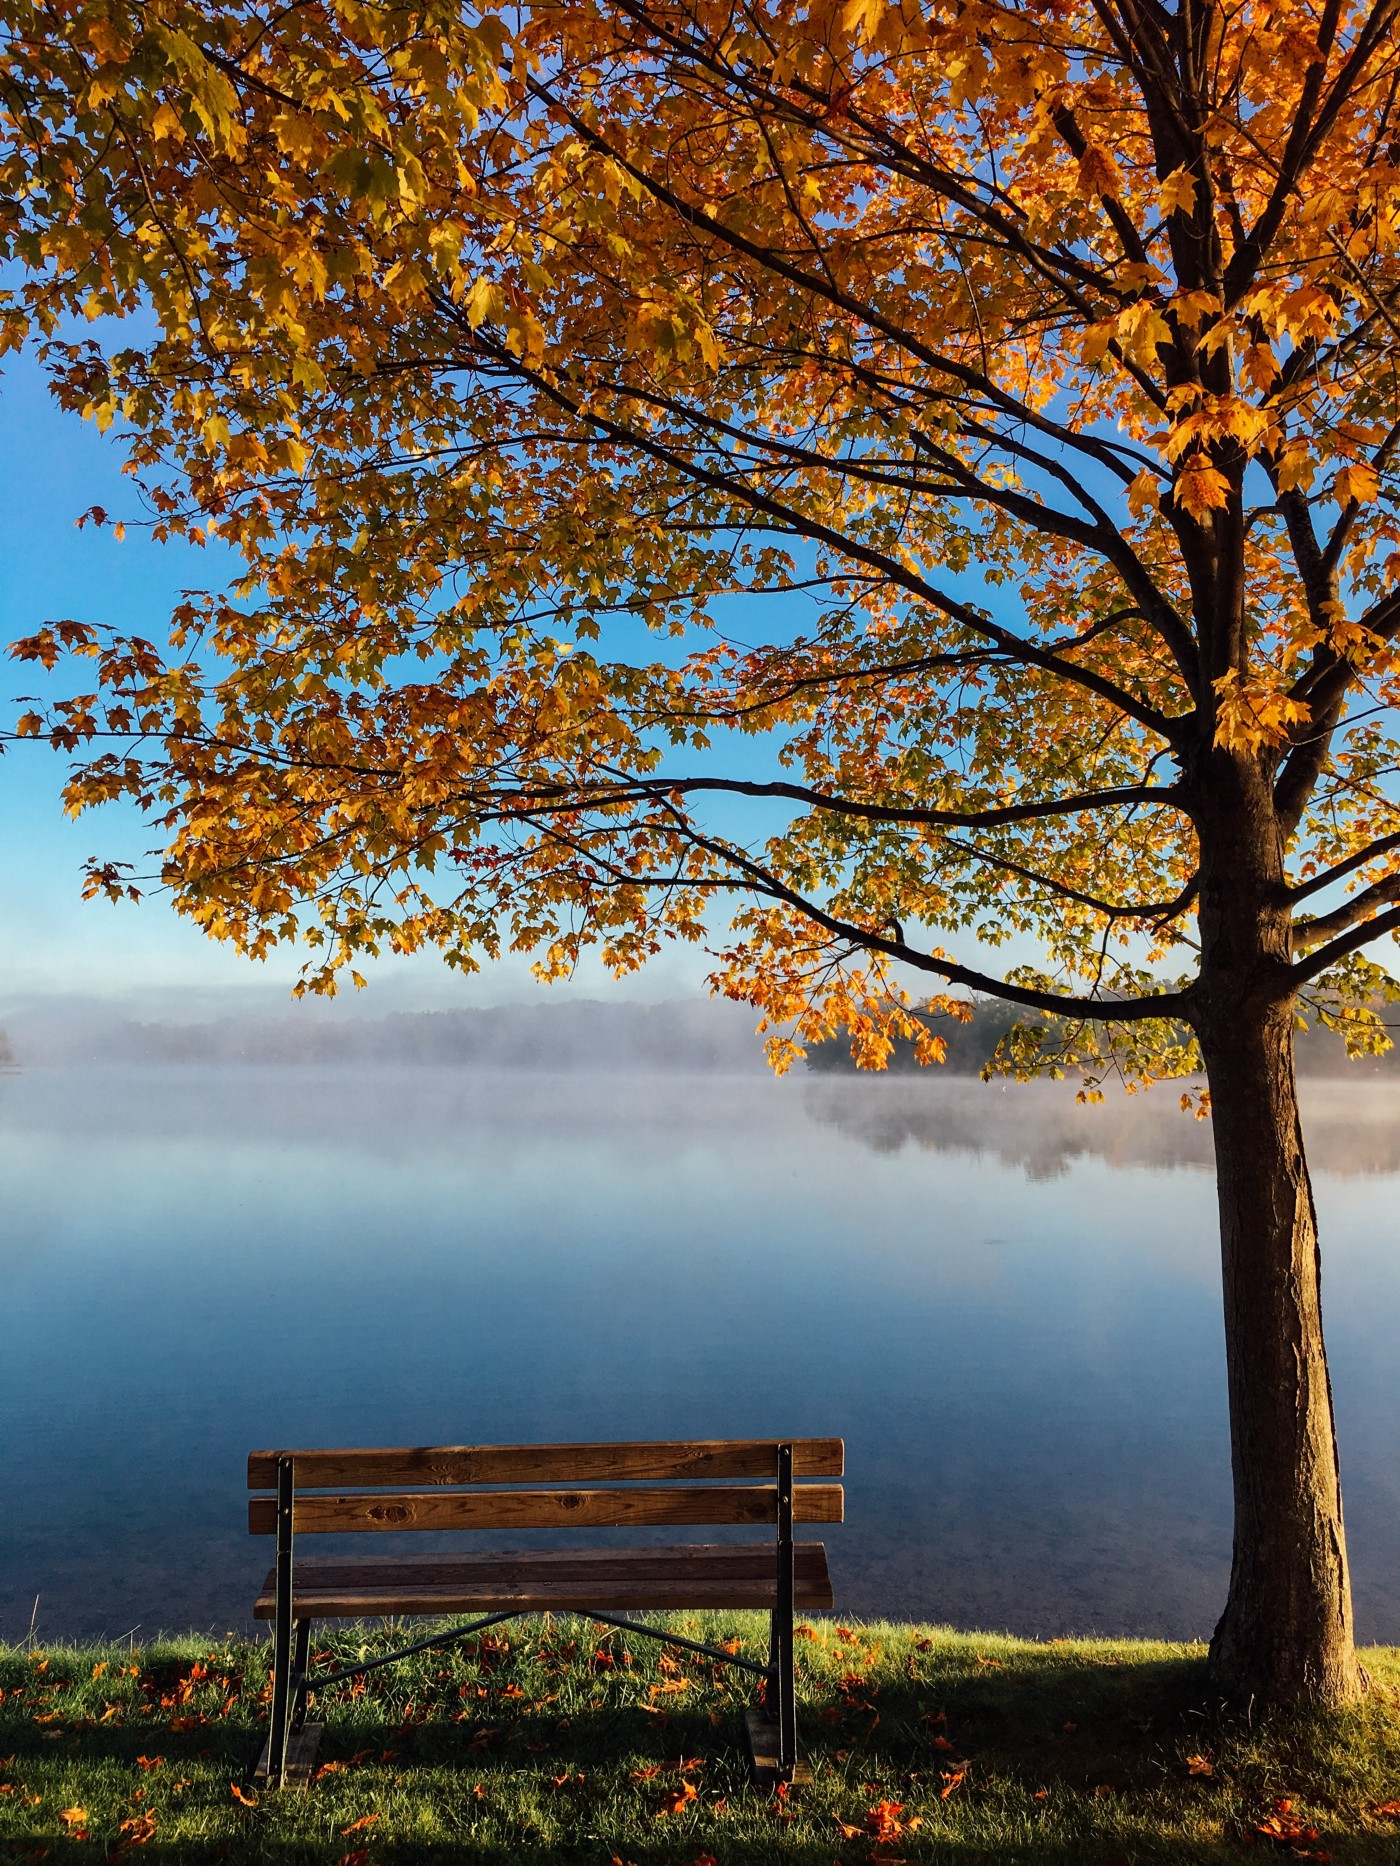 A park bench sitting under a tree with colored trees indicating it's fall. There is fog hovering over a body of water in front of the bench and tree.